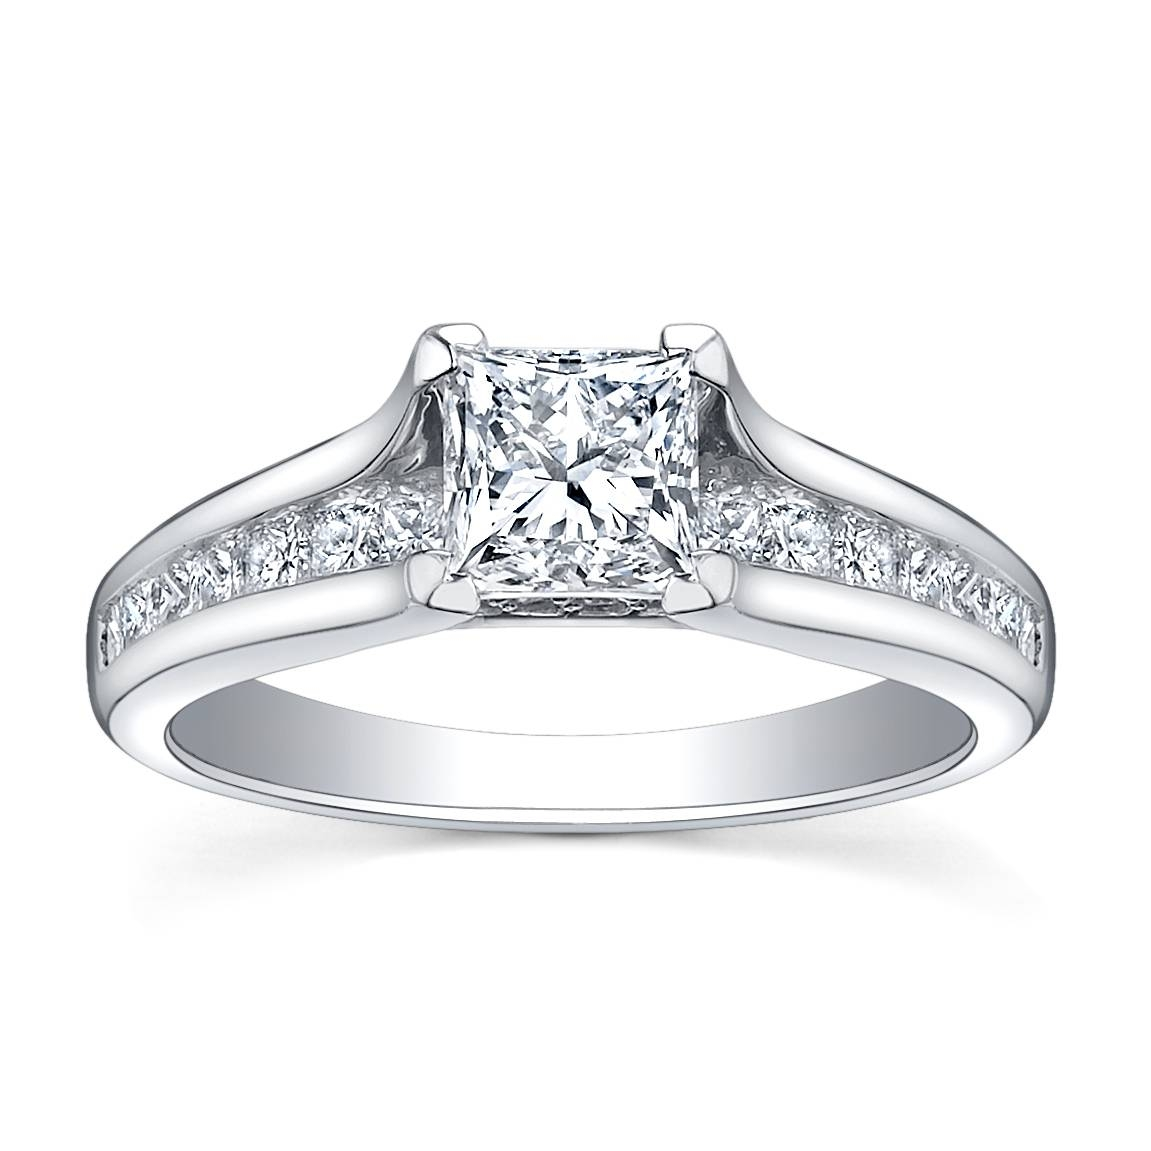 Fallers Wedding Jewellery 18k White Gold Diamond Engagement Ring Within White Gold Engagement Rings (View 3 of 15)